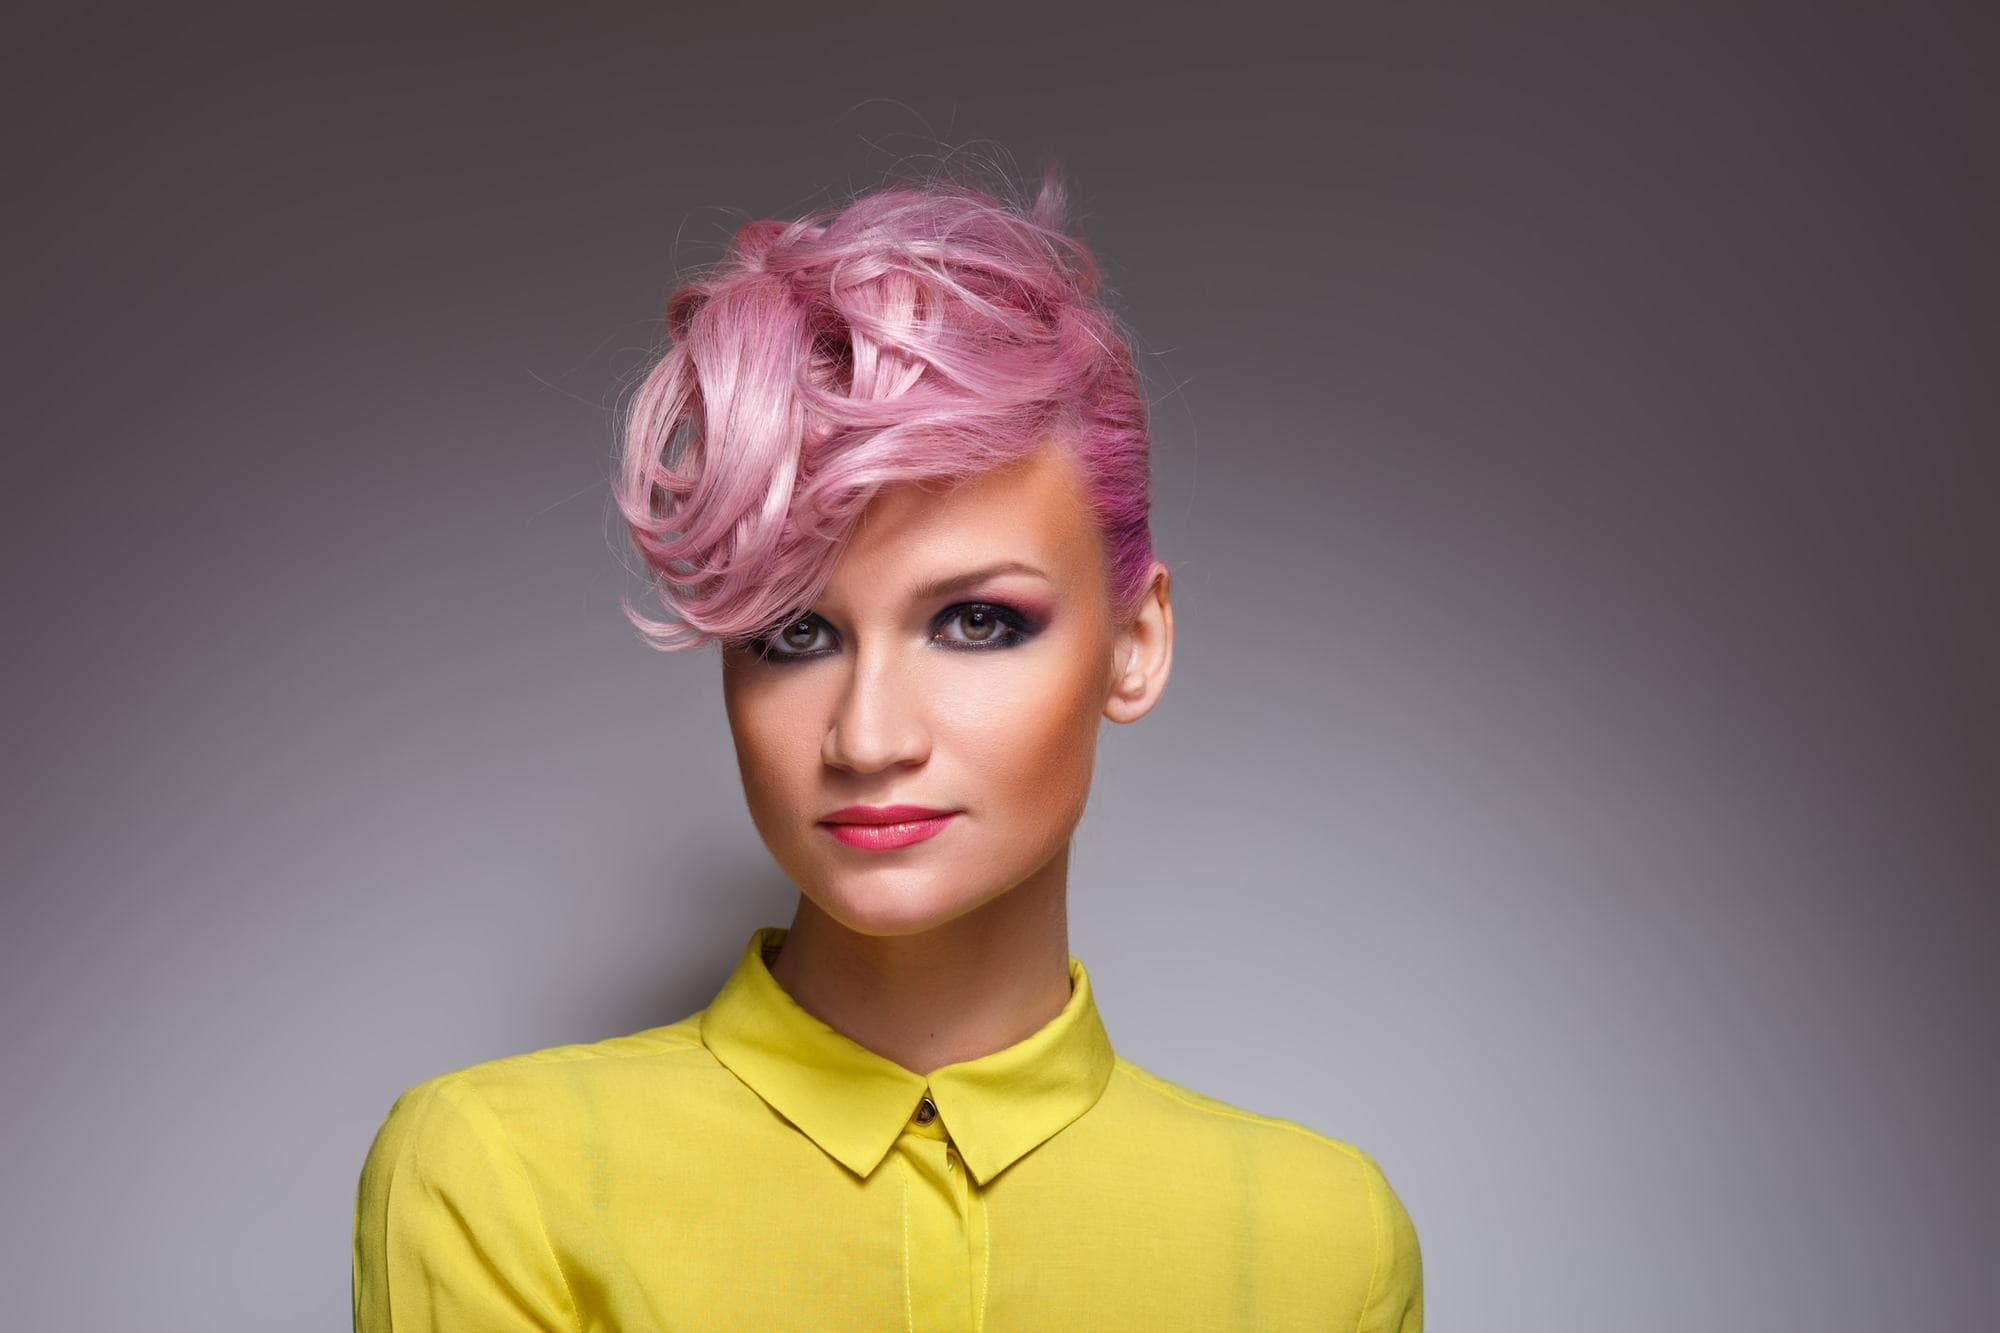 metallic hair swooped pink short hair